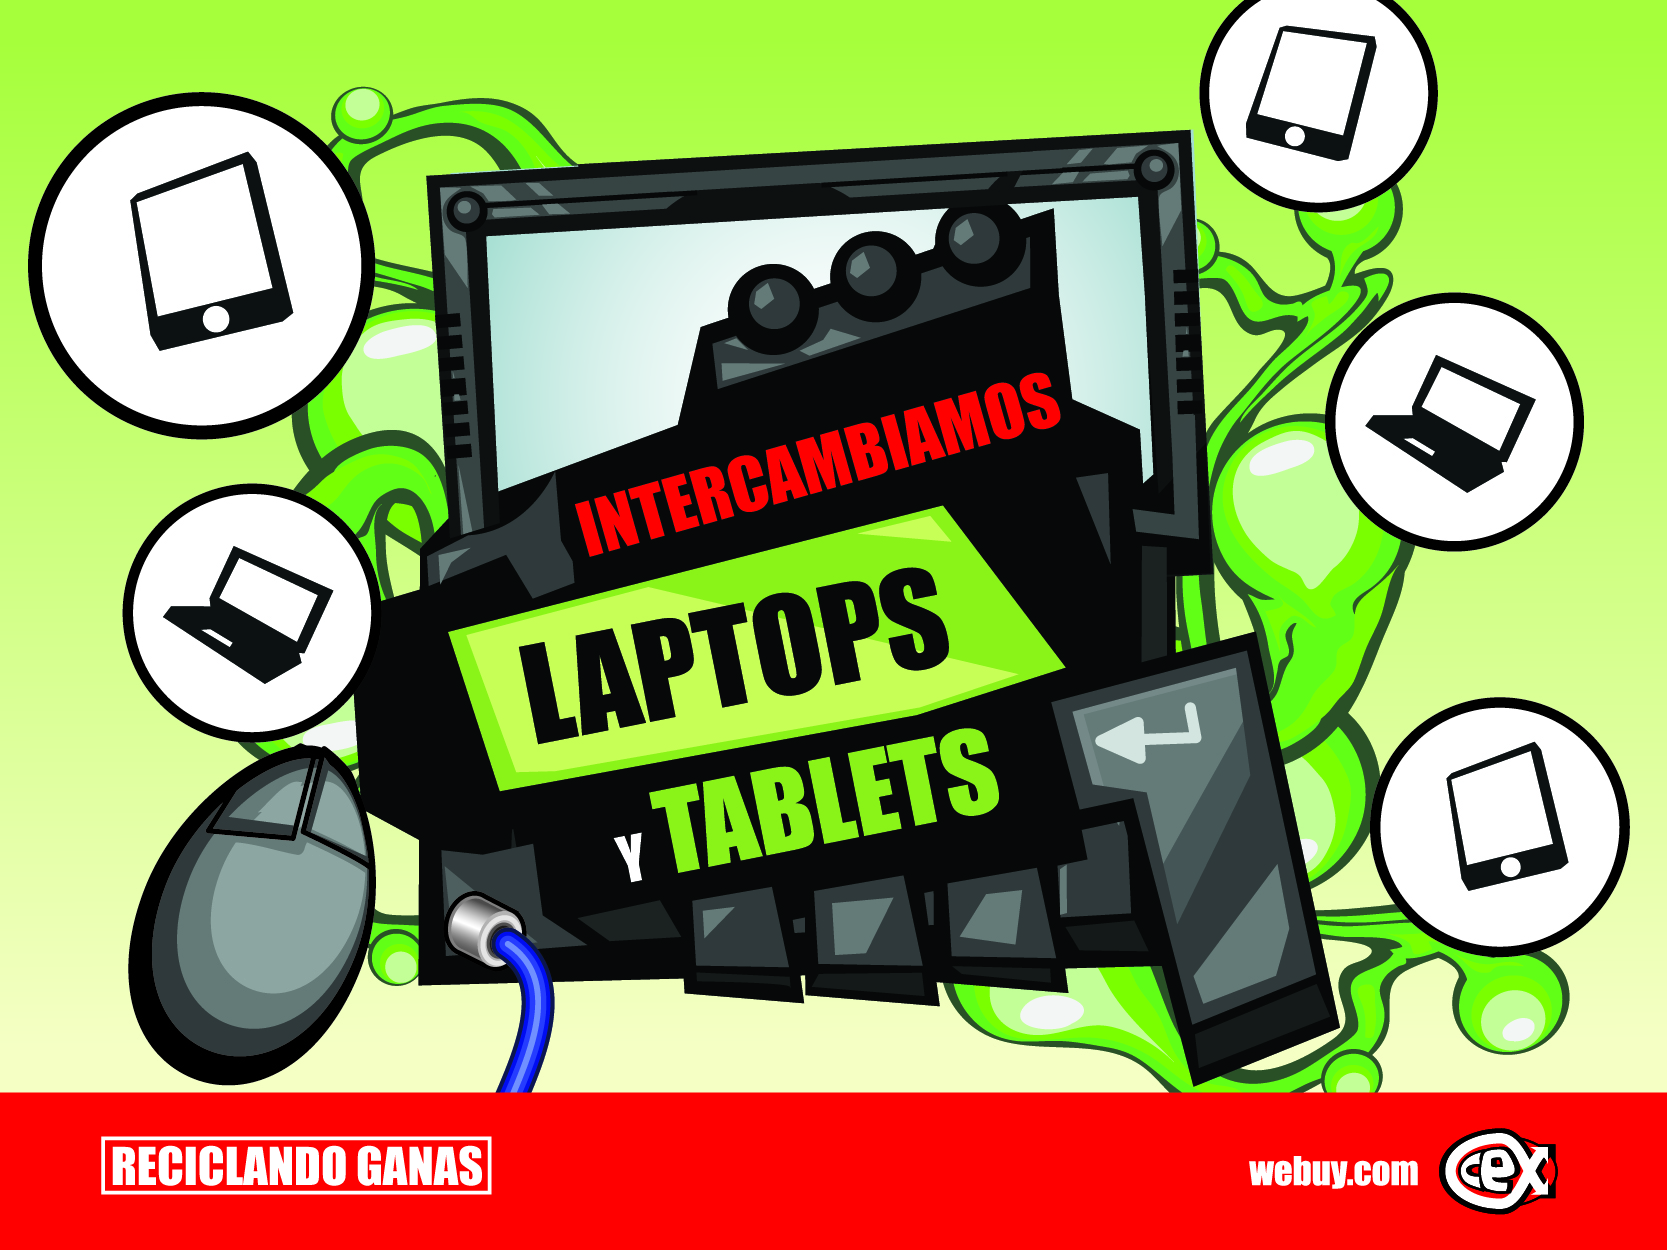 CeX_Laptops y Tablets